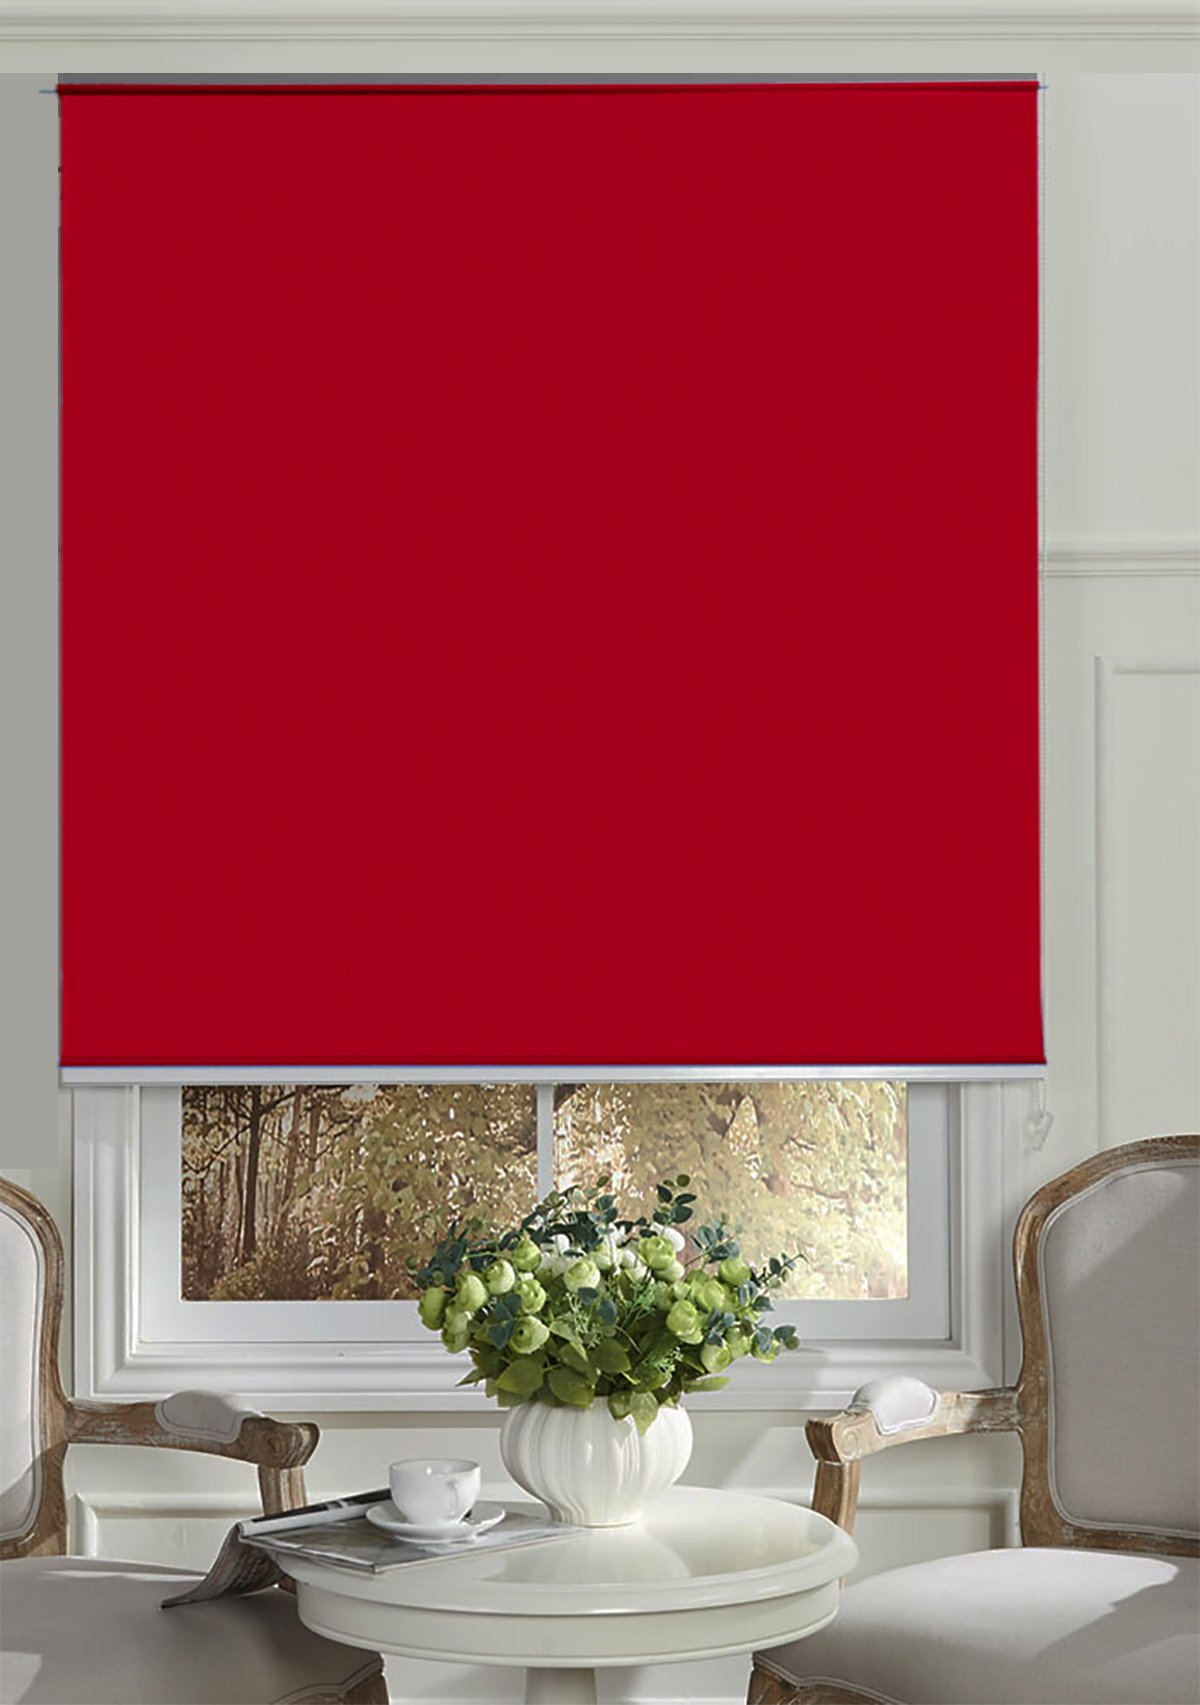 Beryhome Cristal Cordless Blackout Roller Shades/Blinds. Ideal For Office, Hotel, Bedroom, Kitchen, Kid's Room Window Decor. Size: Width 25''x Height 68'' inches. Size: Red. (W25''xH68'', Red)